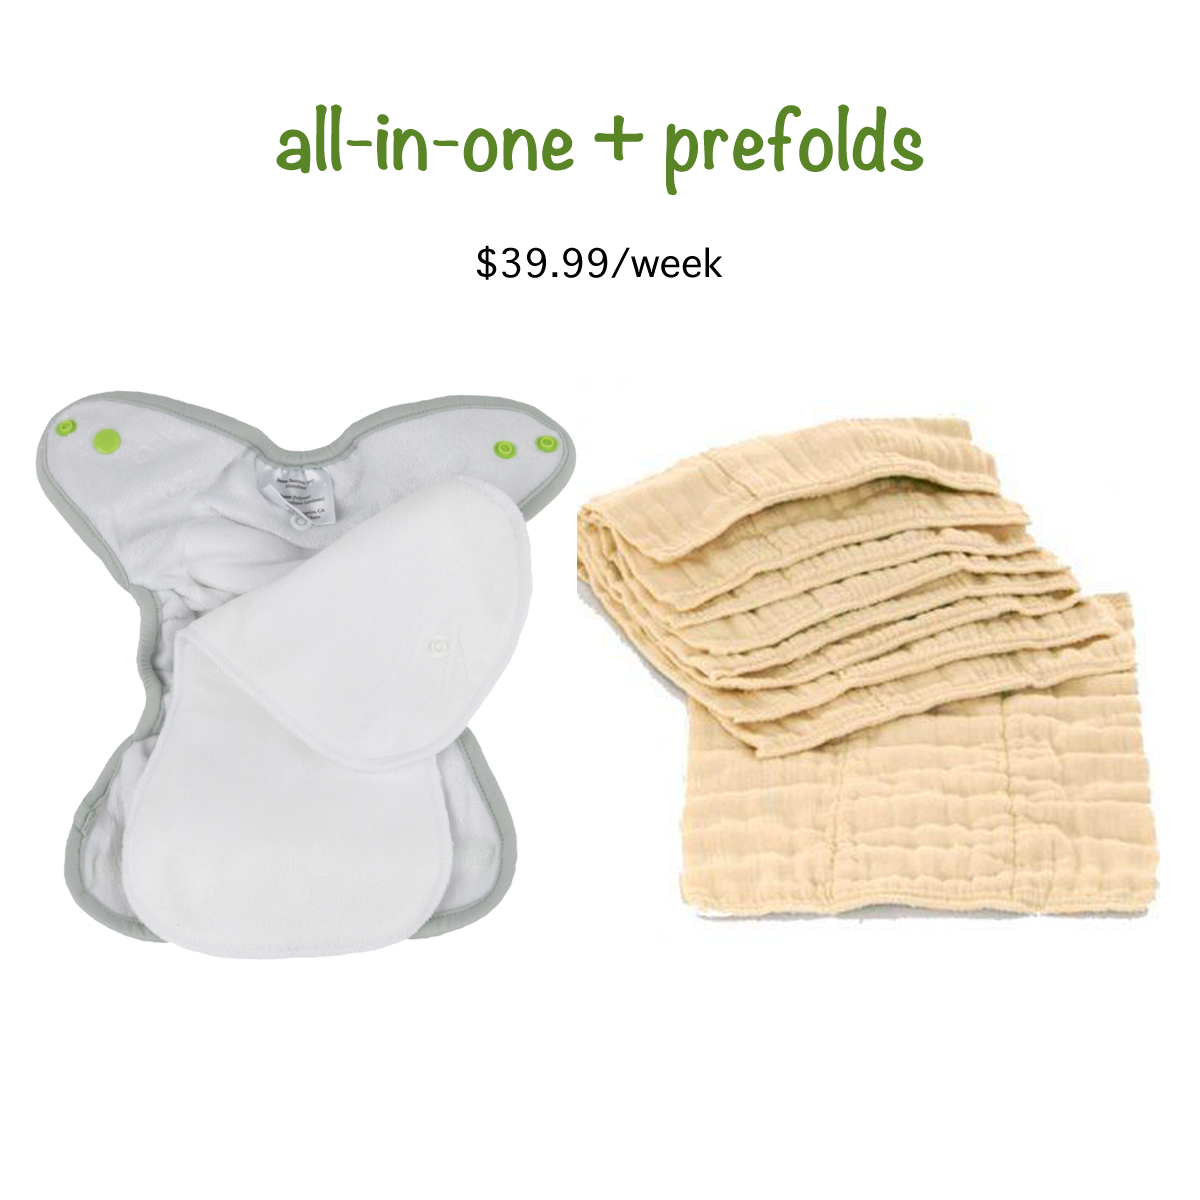 be6ba86f8dc4e All In One and Organic Cotton Prefold Diaper Service - 4 weeks